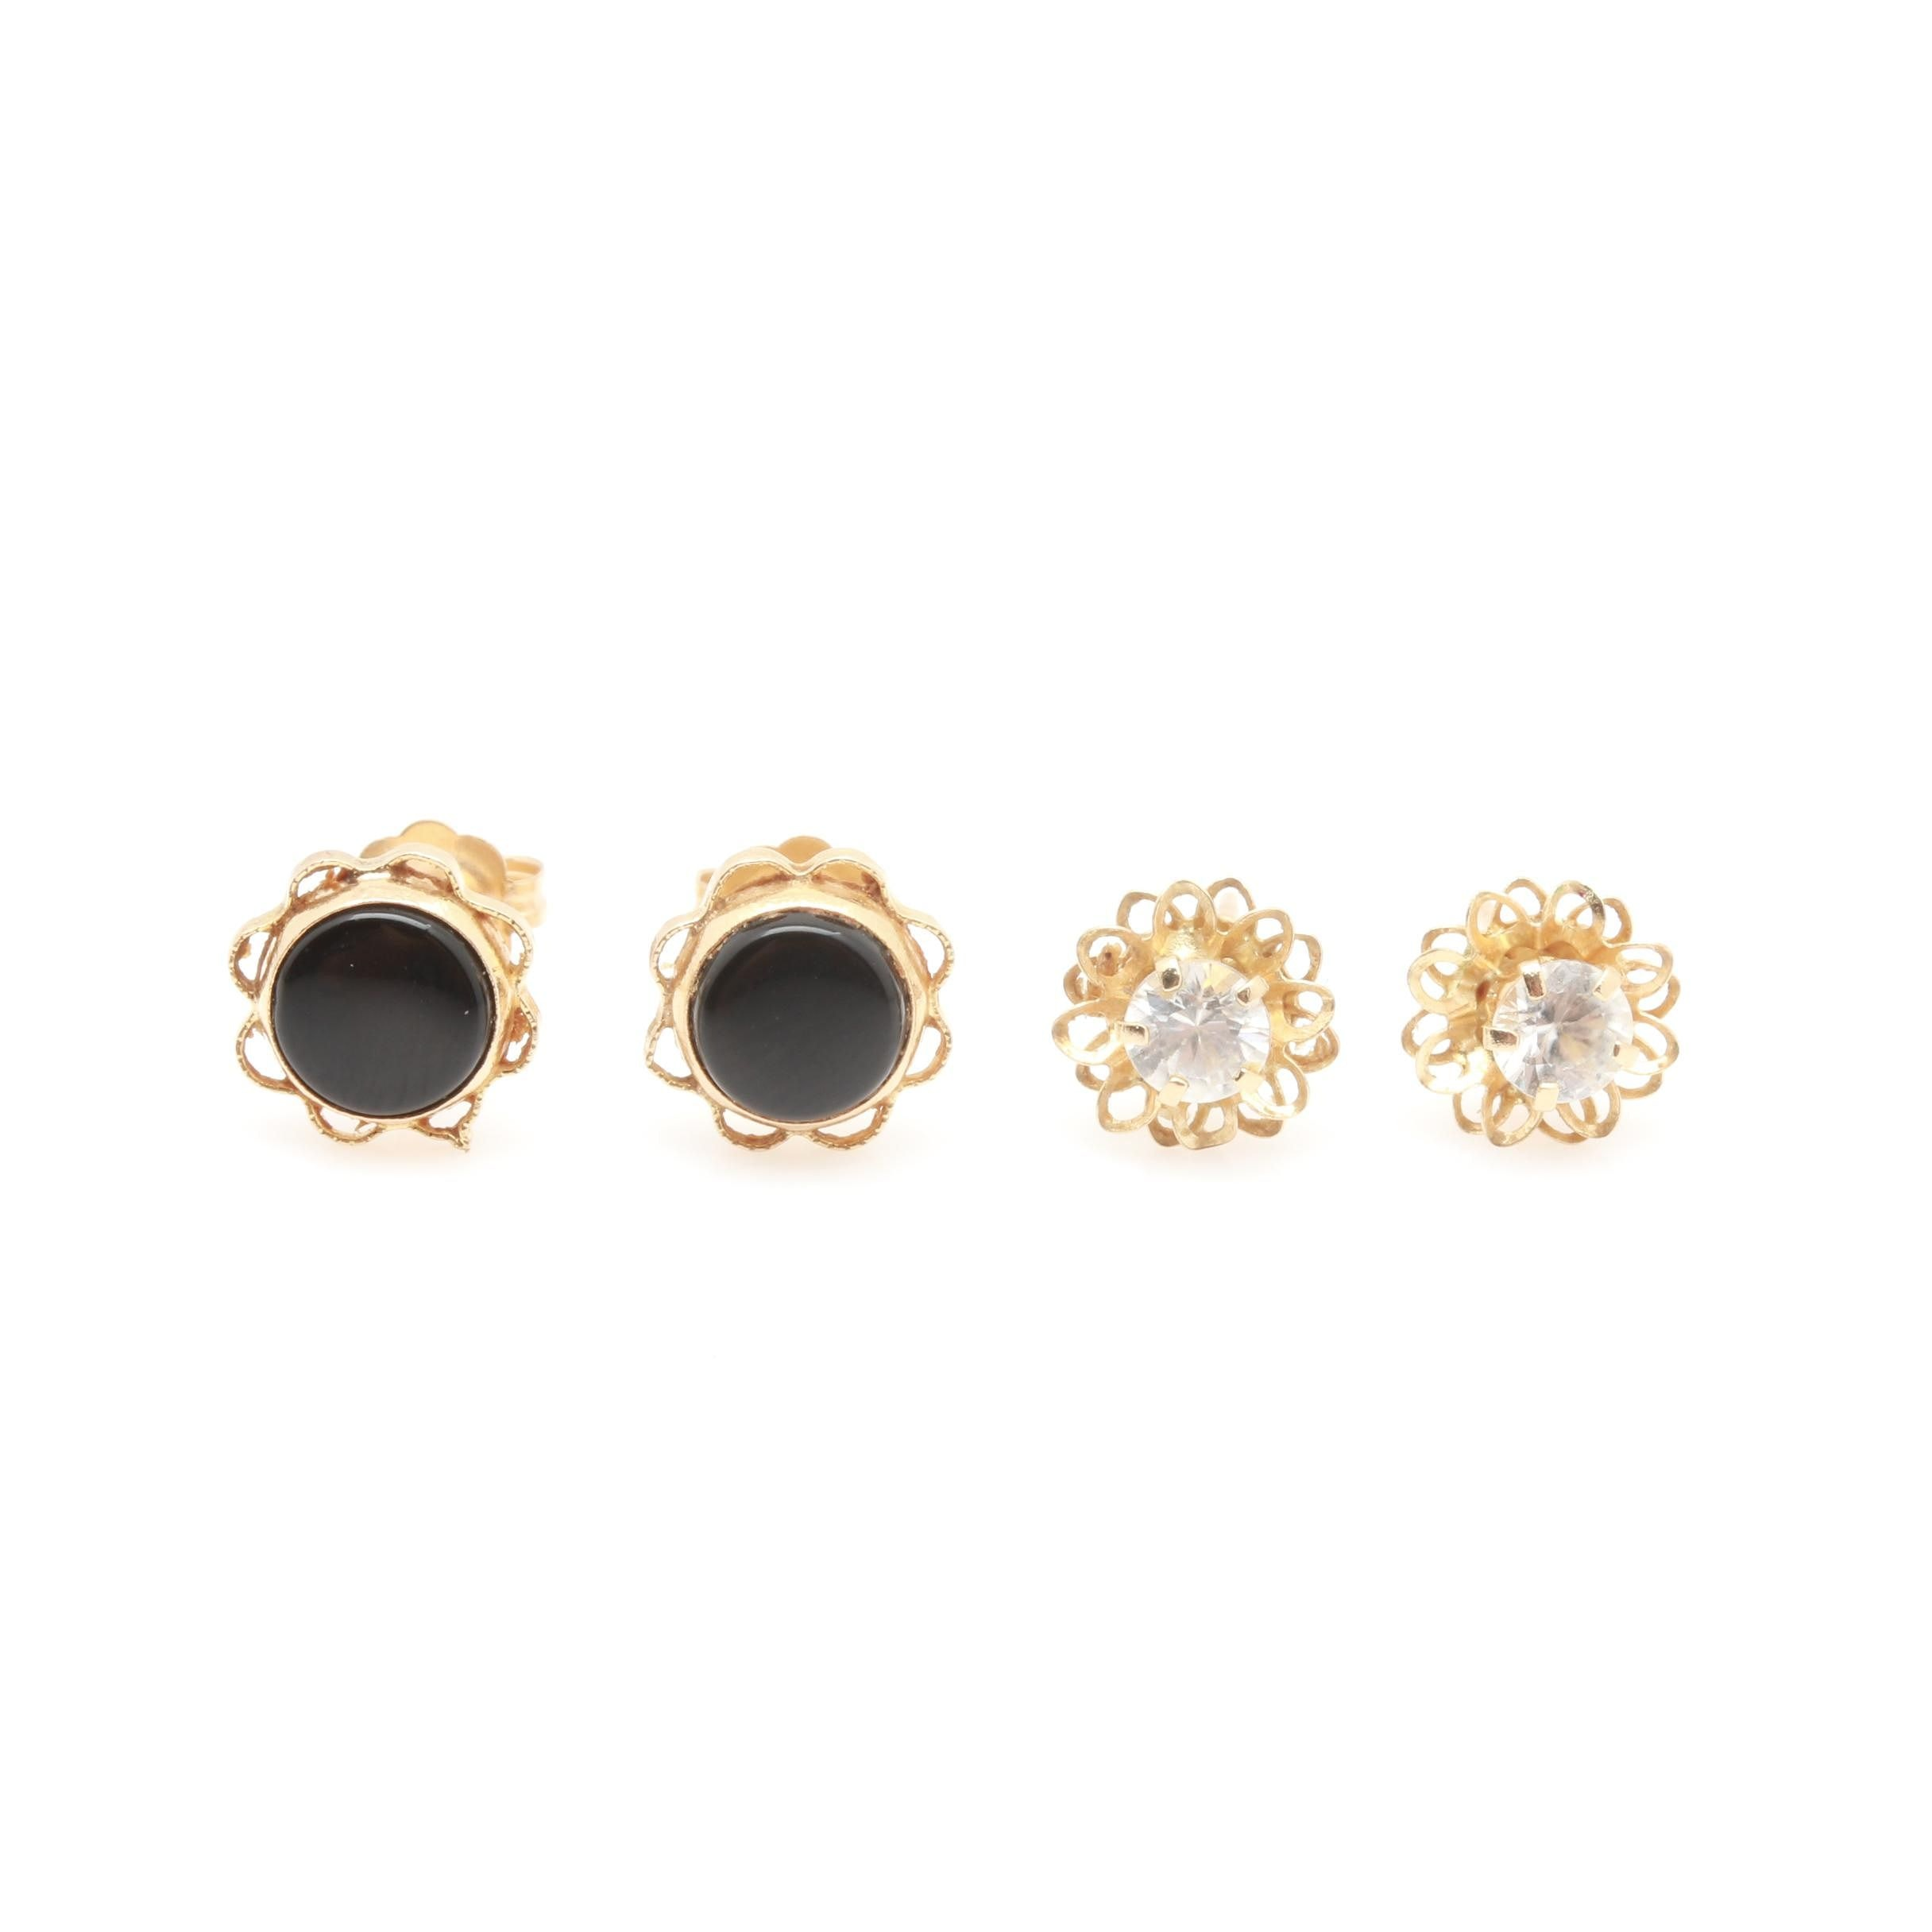 10K and 14K Yellow Gold Black Onyx and White Zircon Stud Earrings